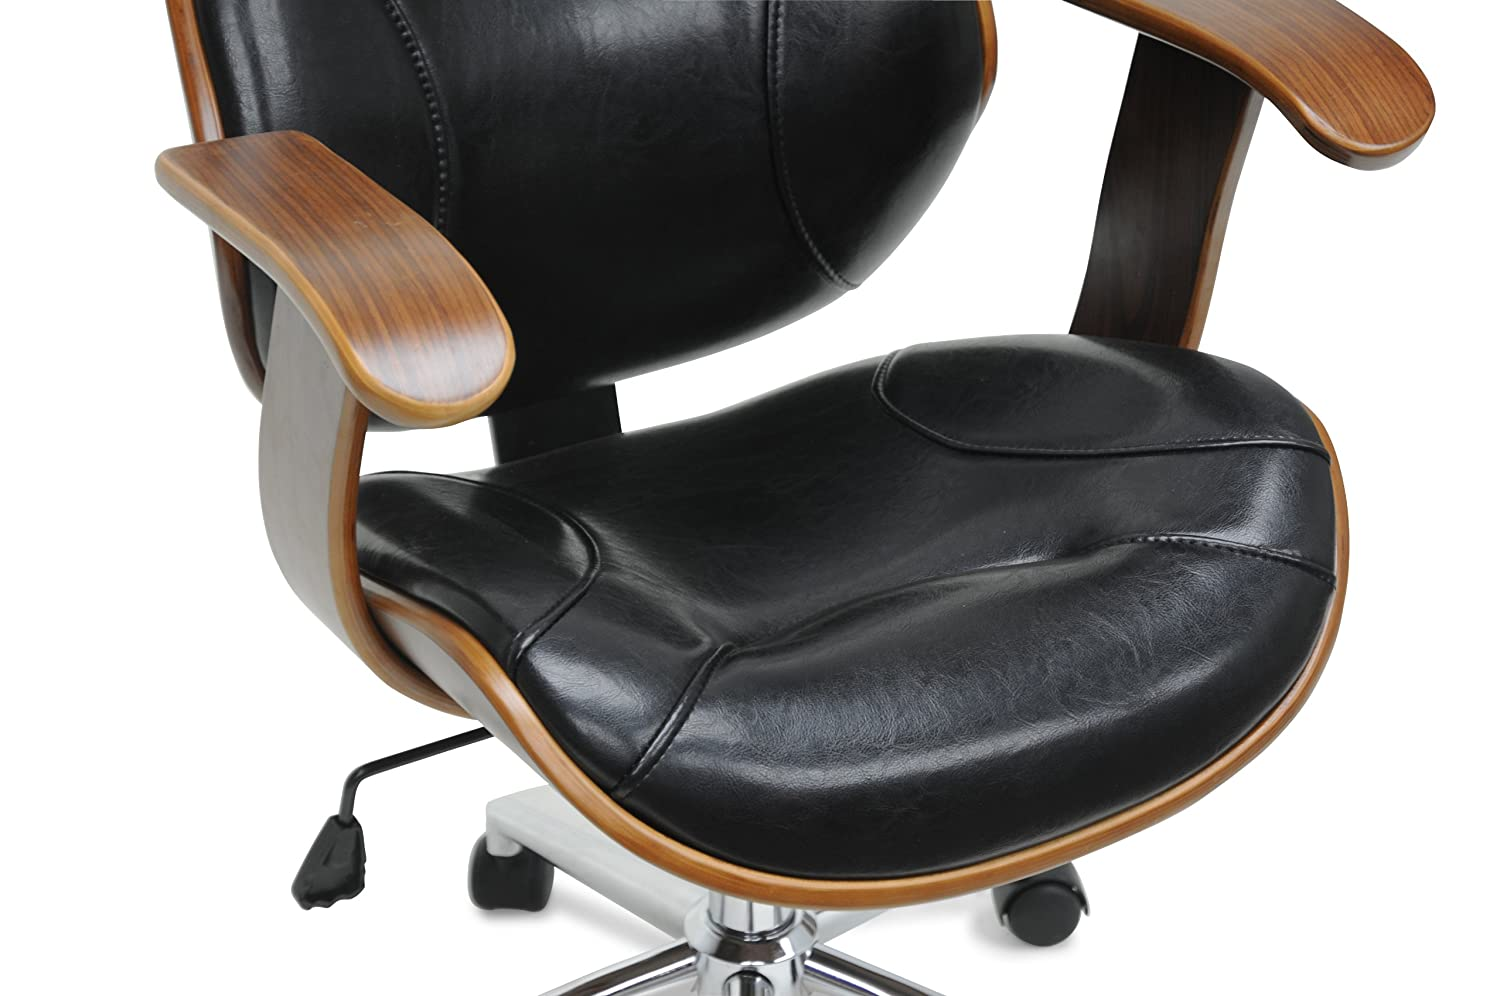 amazoncom baxton studio rathburn modern office chair walnutblack kitchen u0026 dining